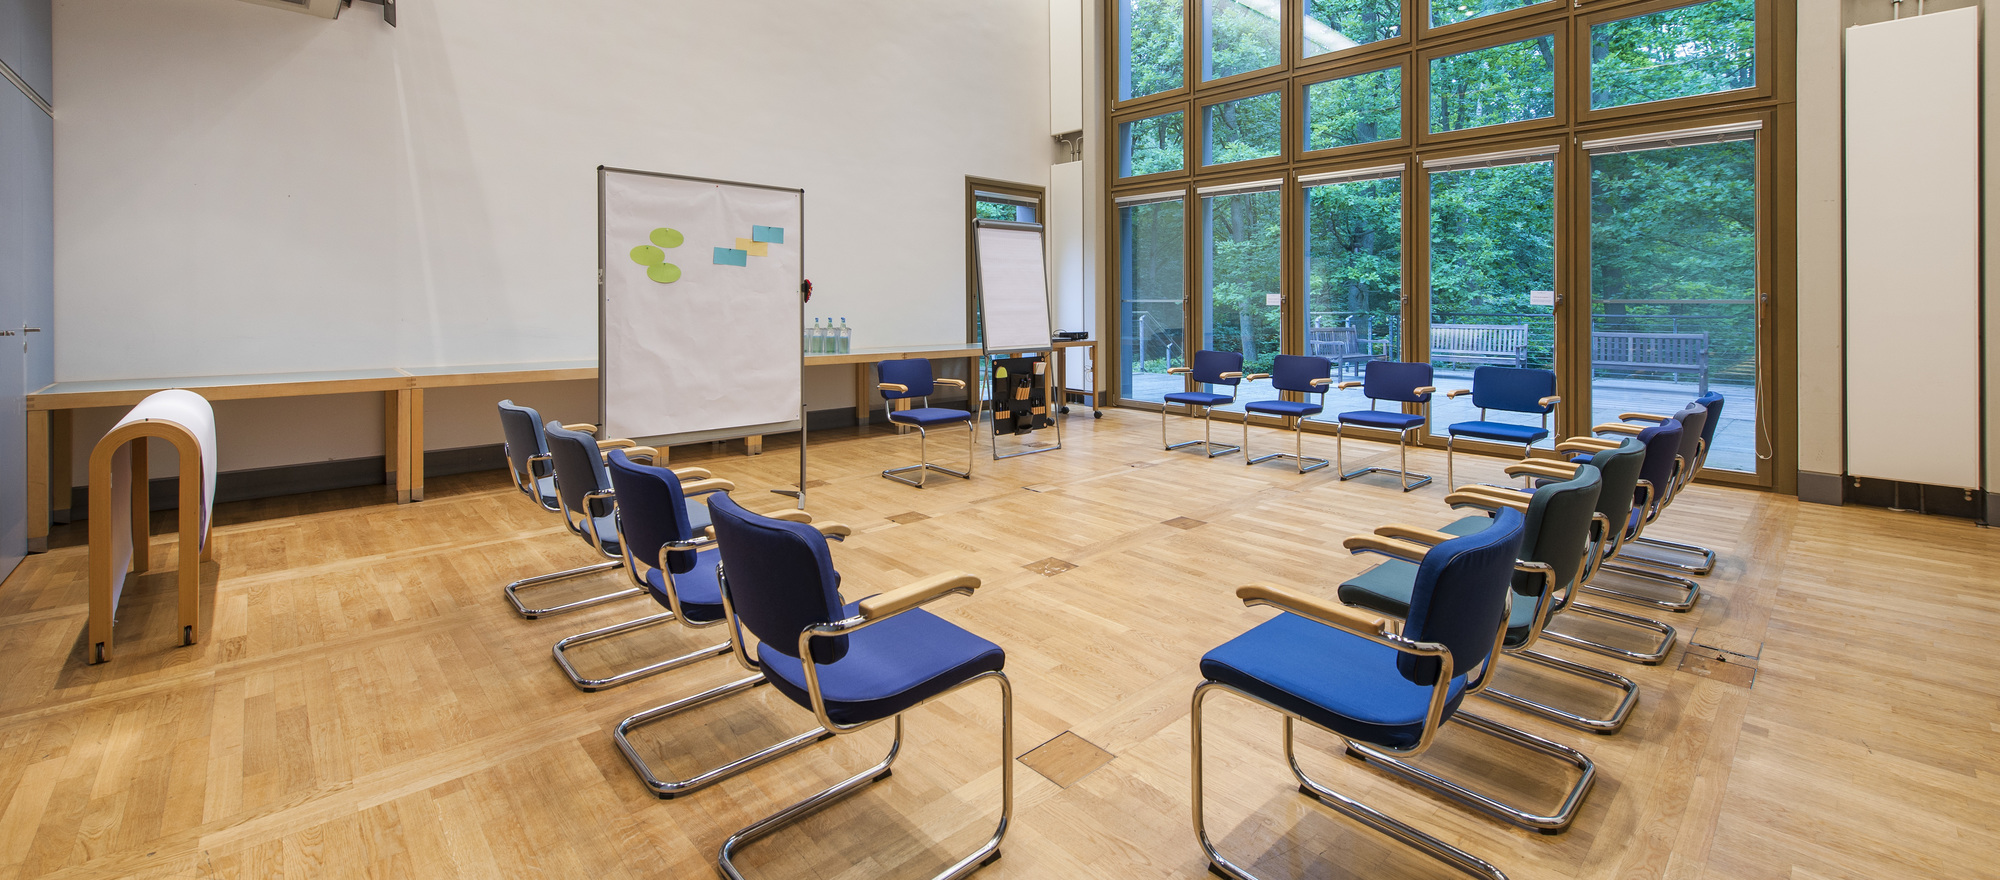 Rooms for big and small events in the Ringhotel Schorfheide | Tagungszentrum der Wirtschaft in Joachimsthal, 4-stars hotel close to Berlin